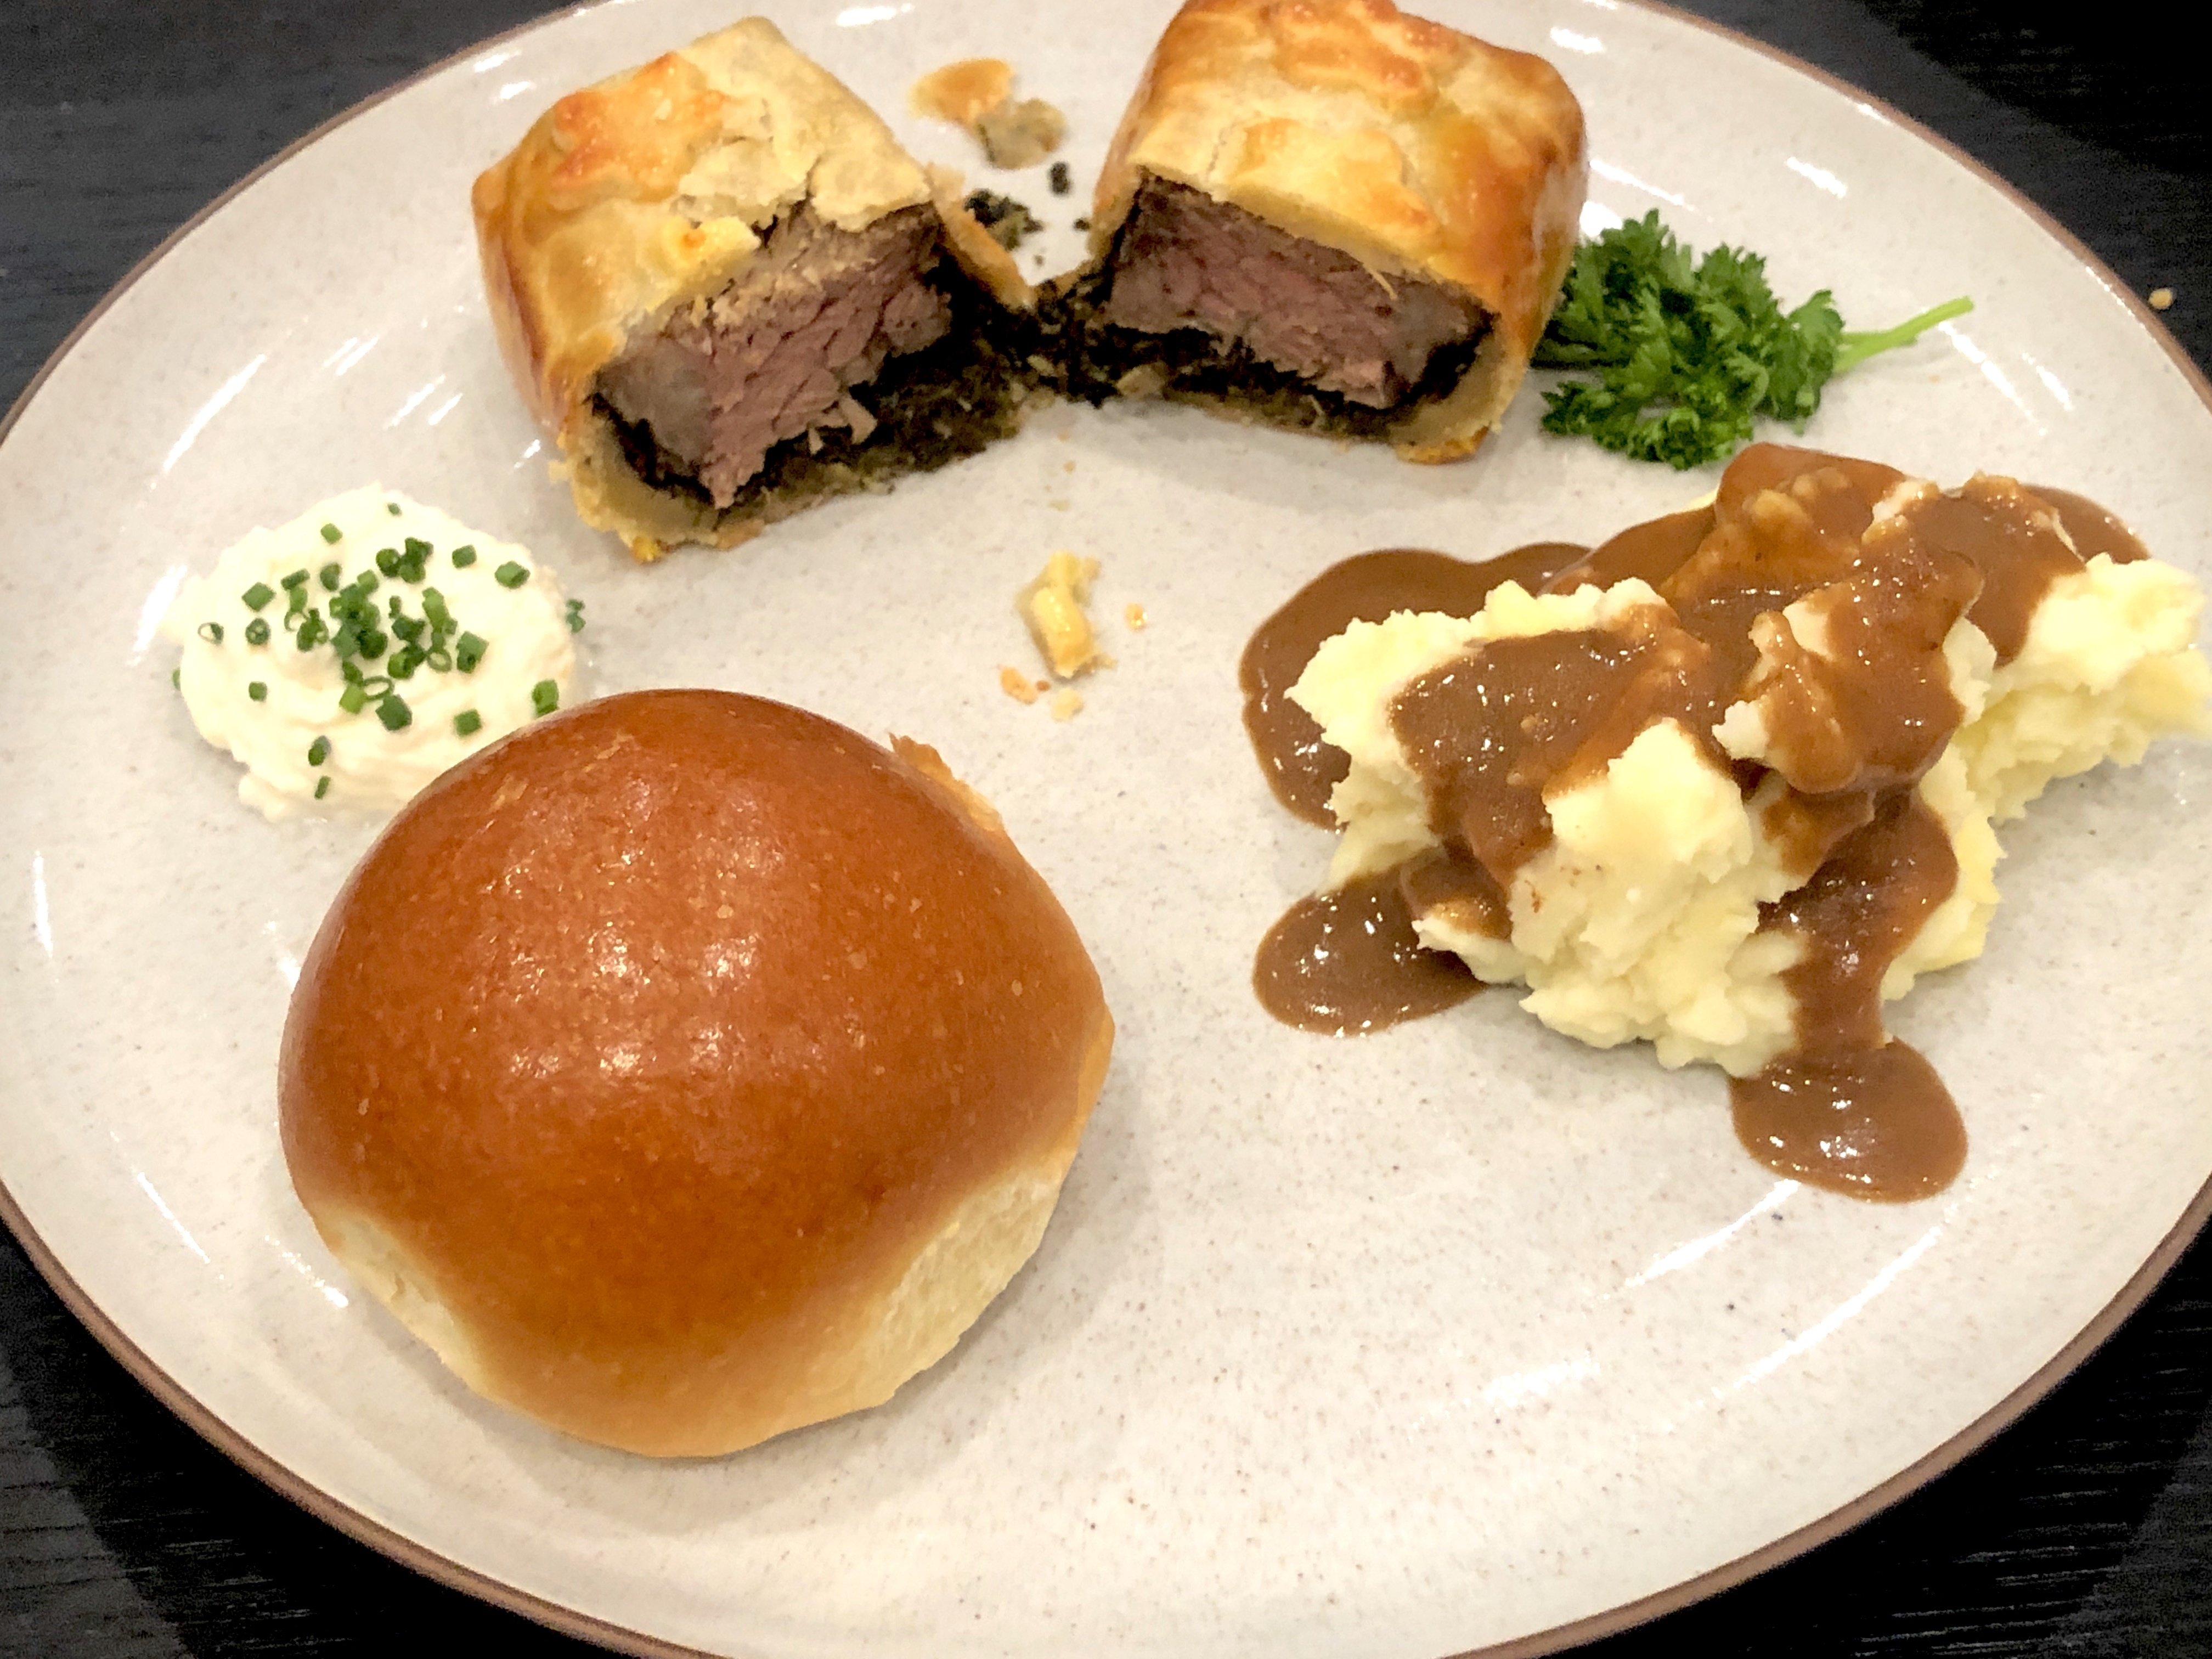 A plate with a dinner roll, beef Wellington, mashed potatoes, and creme fraiche.